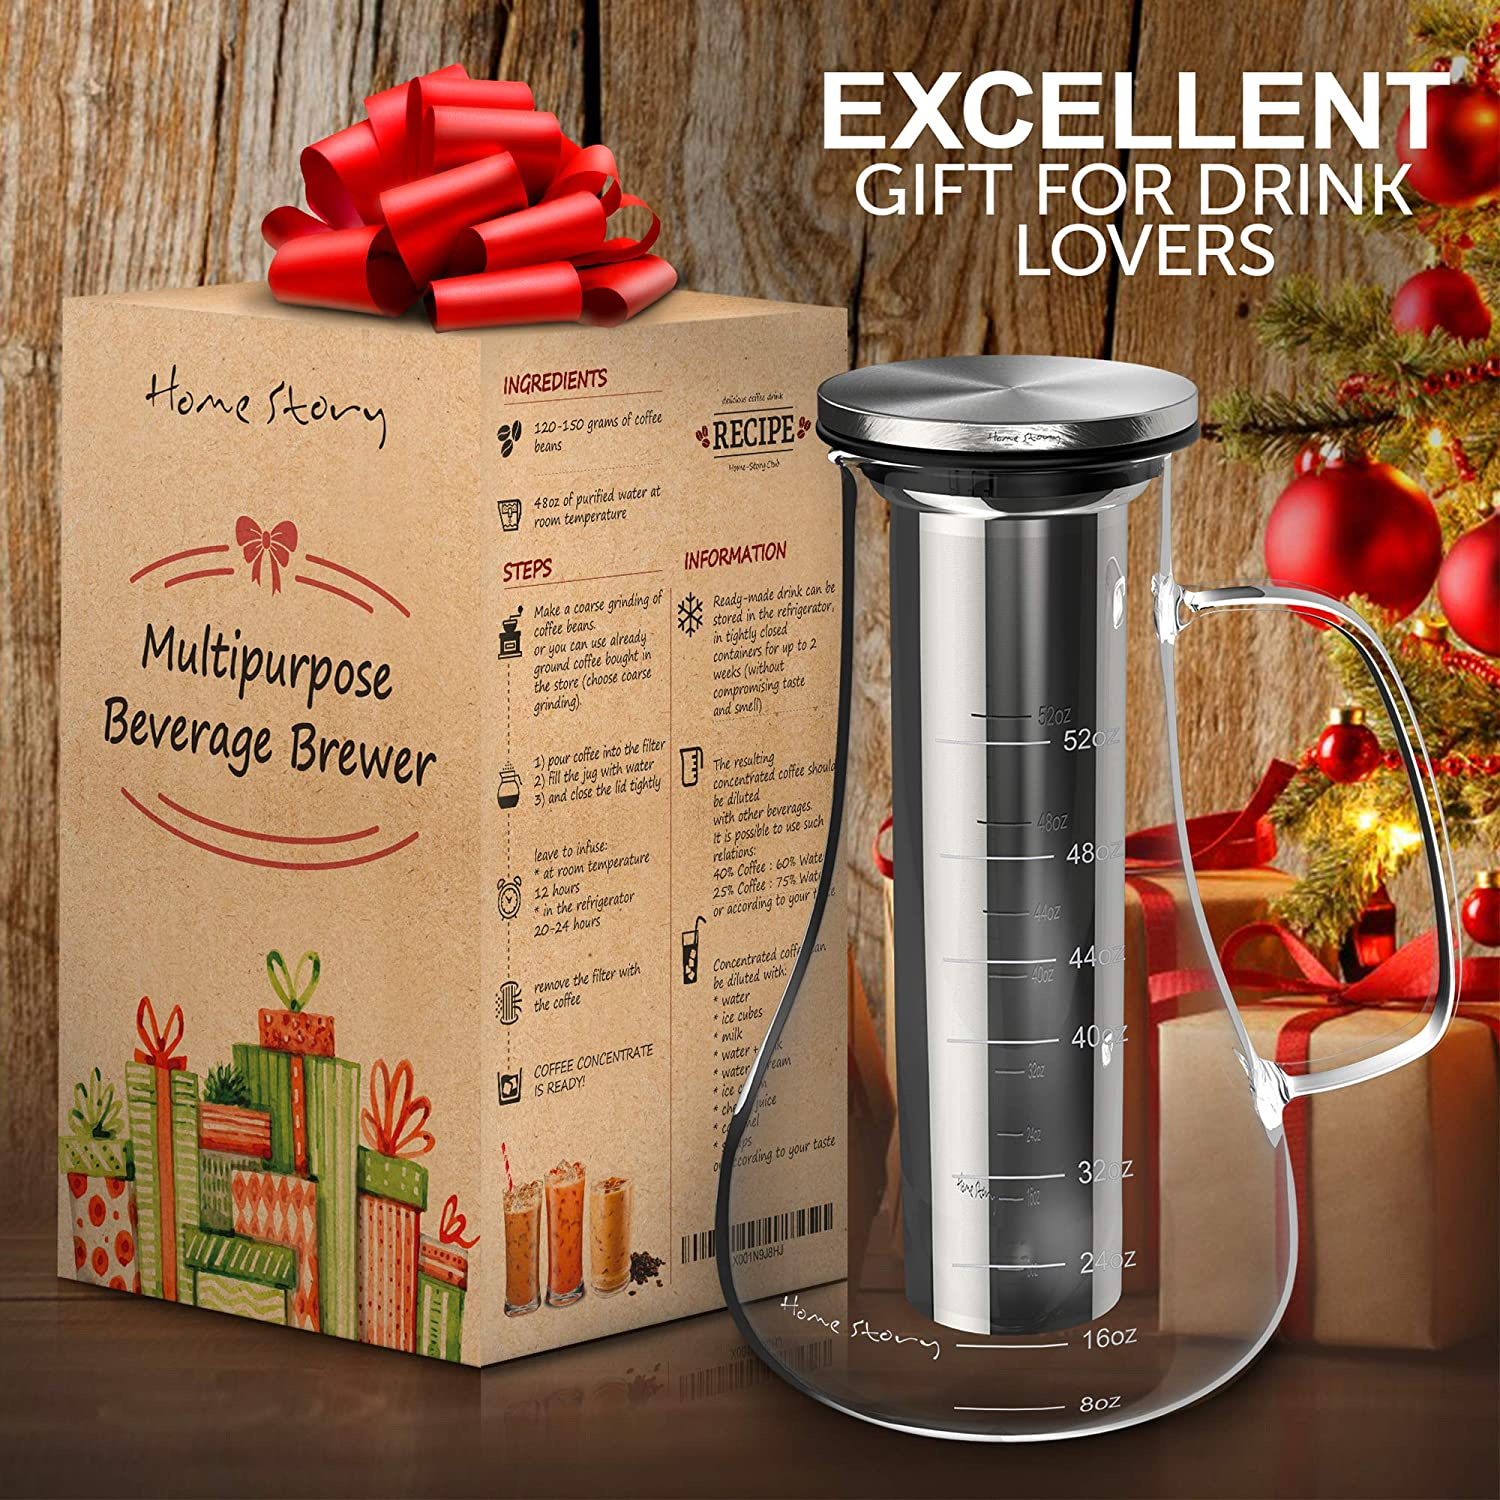 Cold Brew Coffee Maker White – Glass Cold Brew Maker Pitcher 52 oz – Iced Coffee Maker Brewer Kit – Works Even as Large Cold Press Coffee Maker Pot or Hot Iced Tea Infuser Carafe